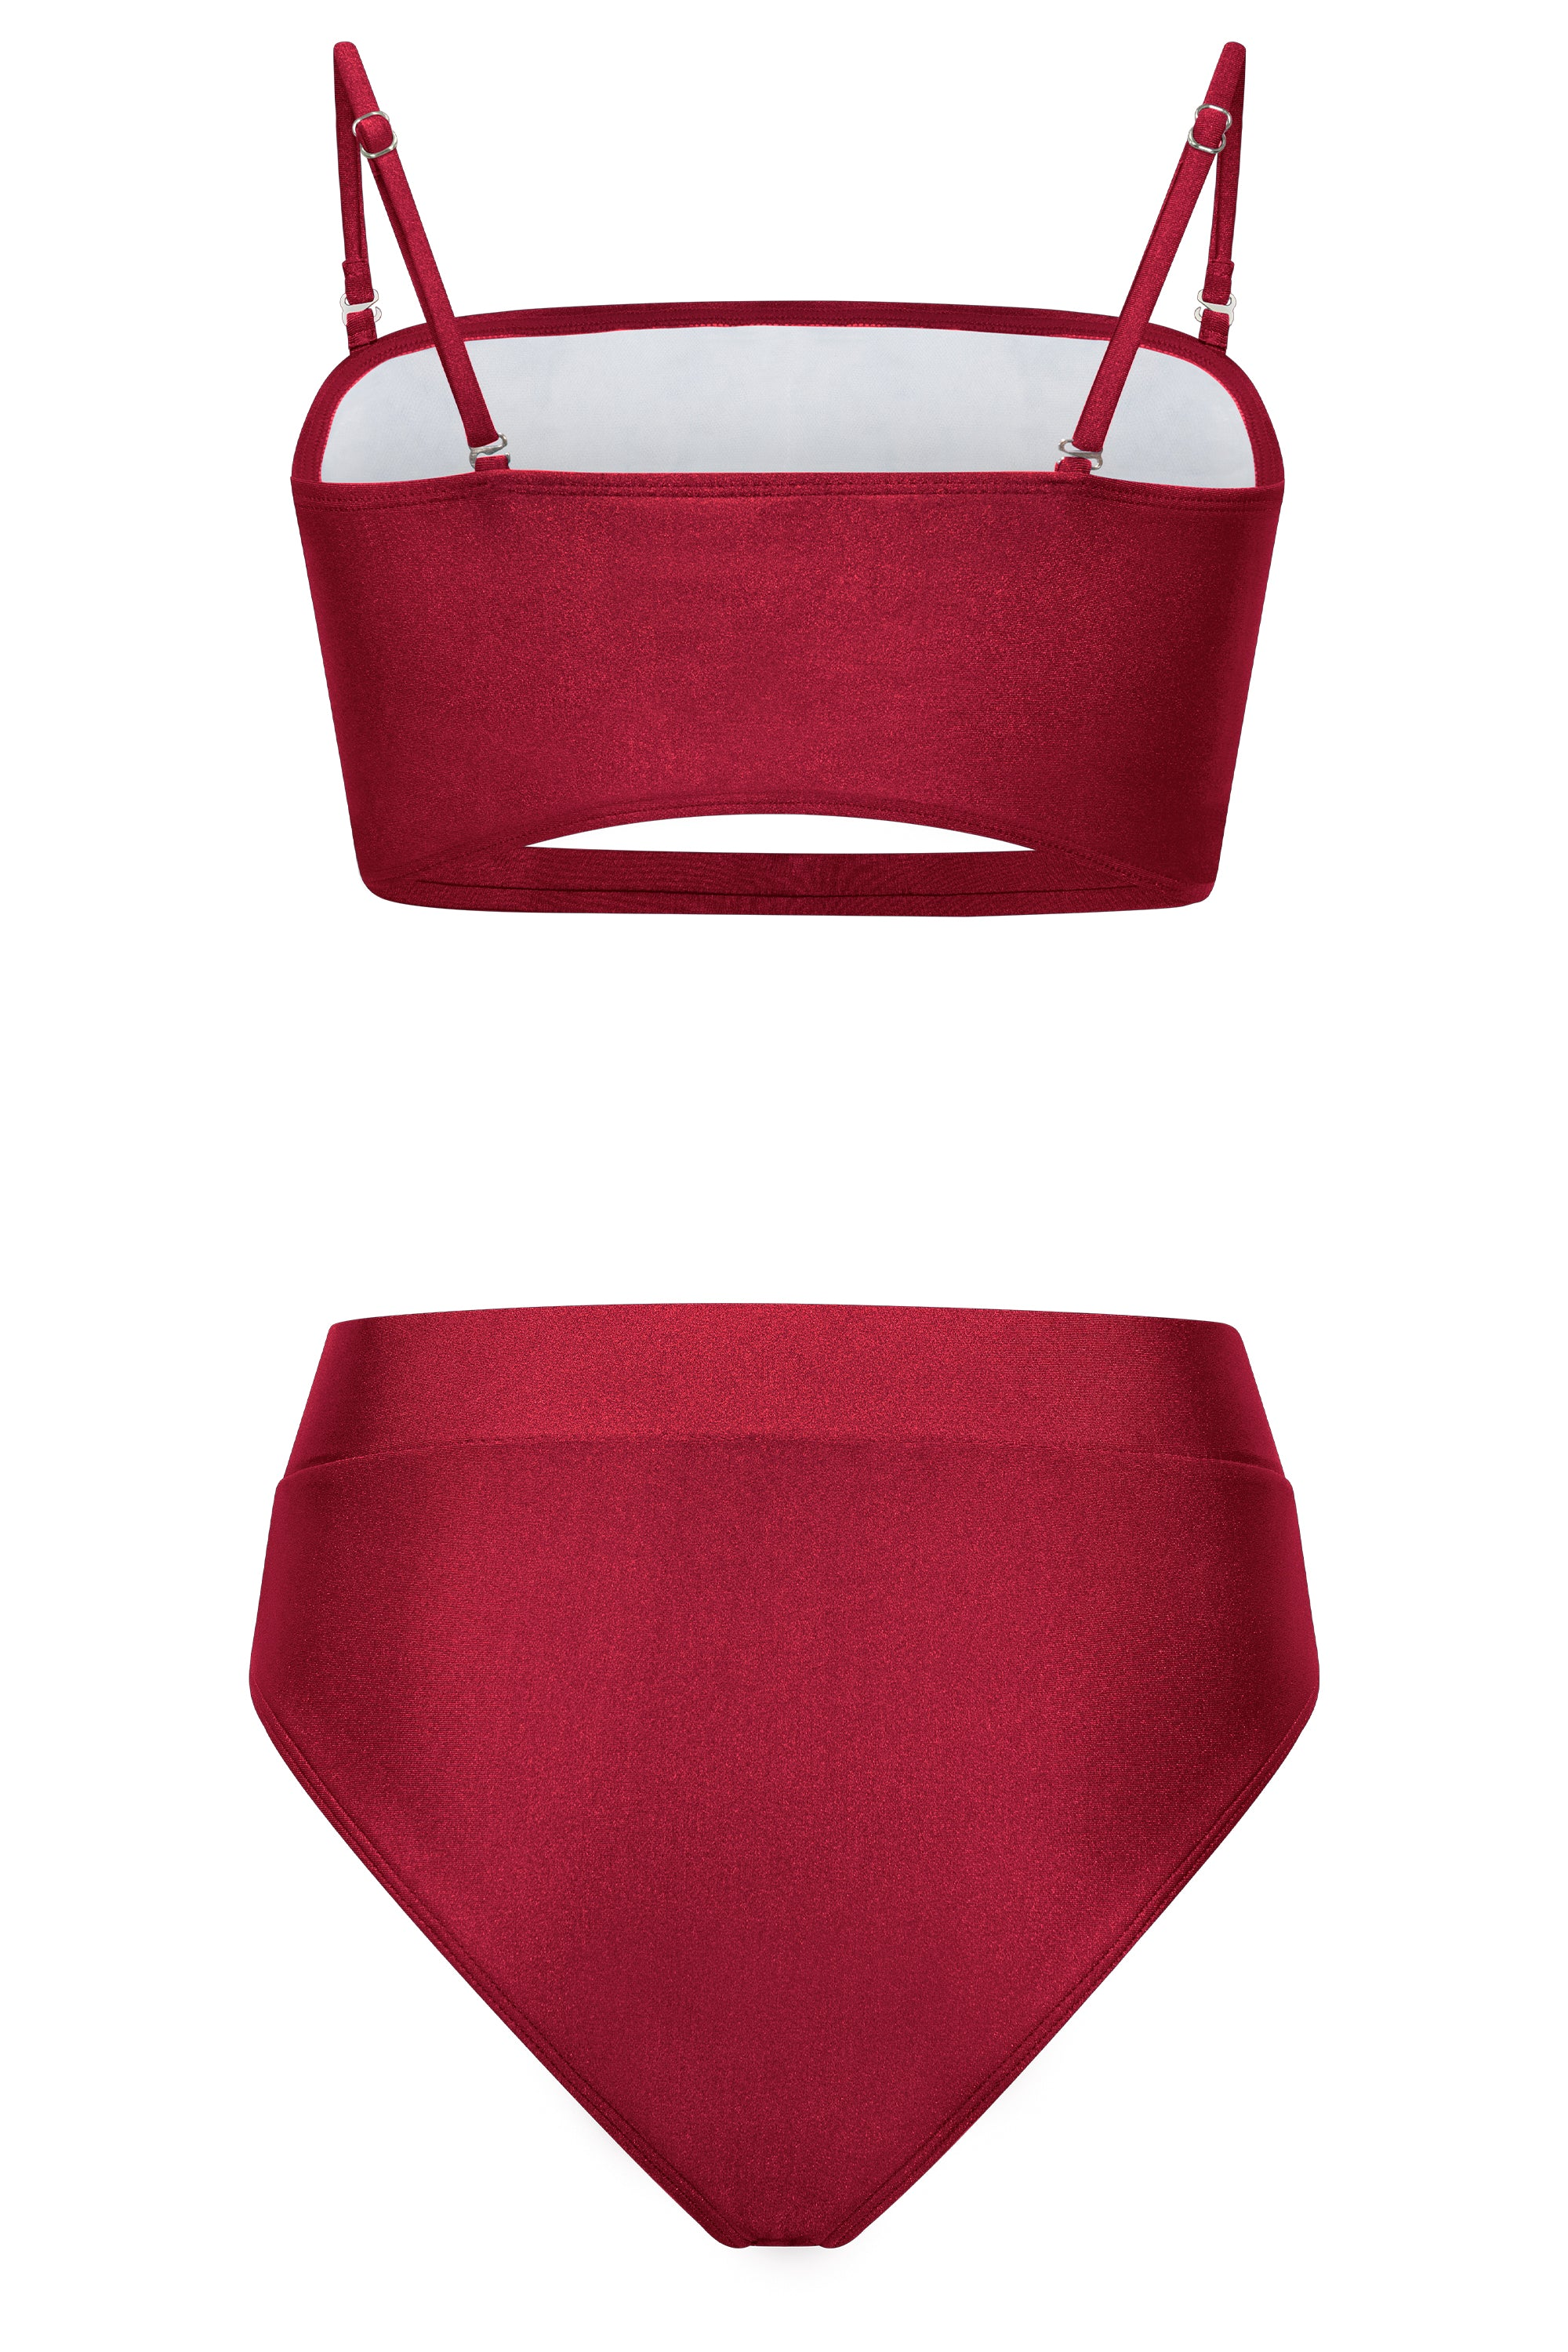 THE FORTUNA BIKINI- GARNET